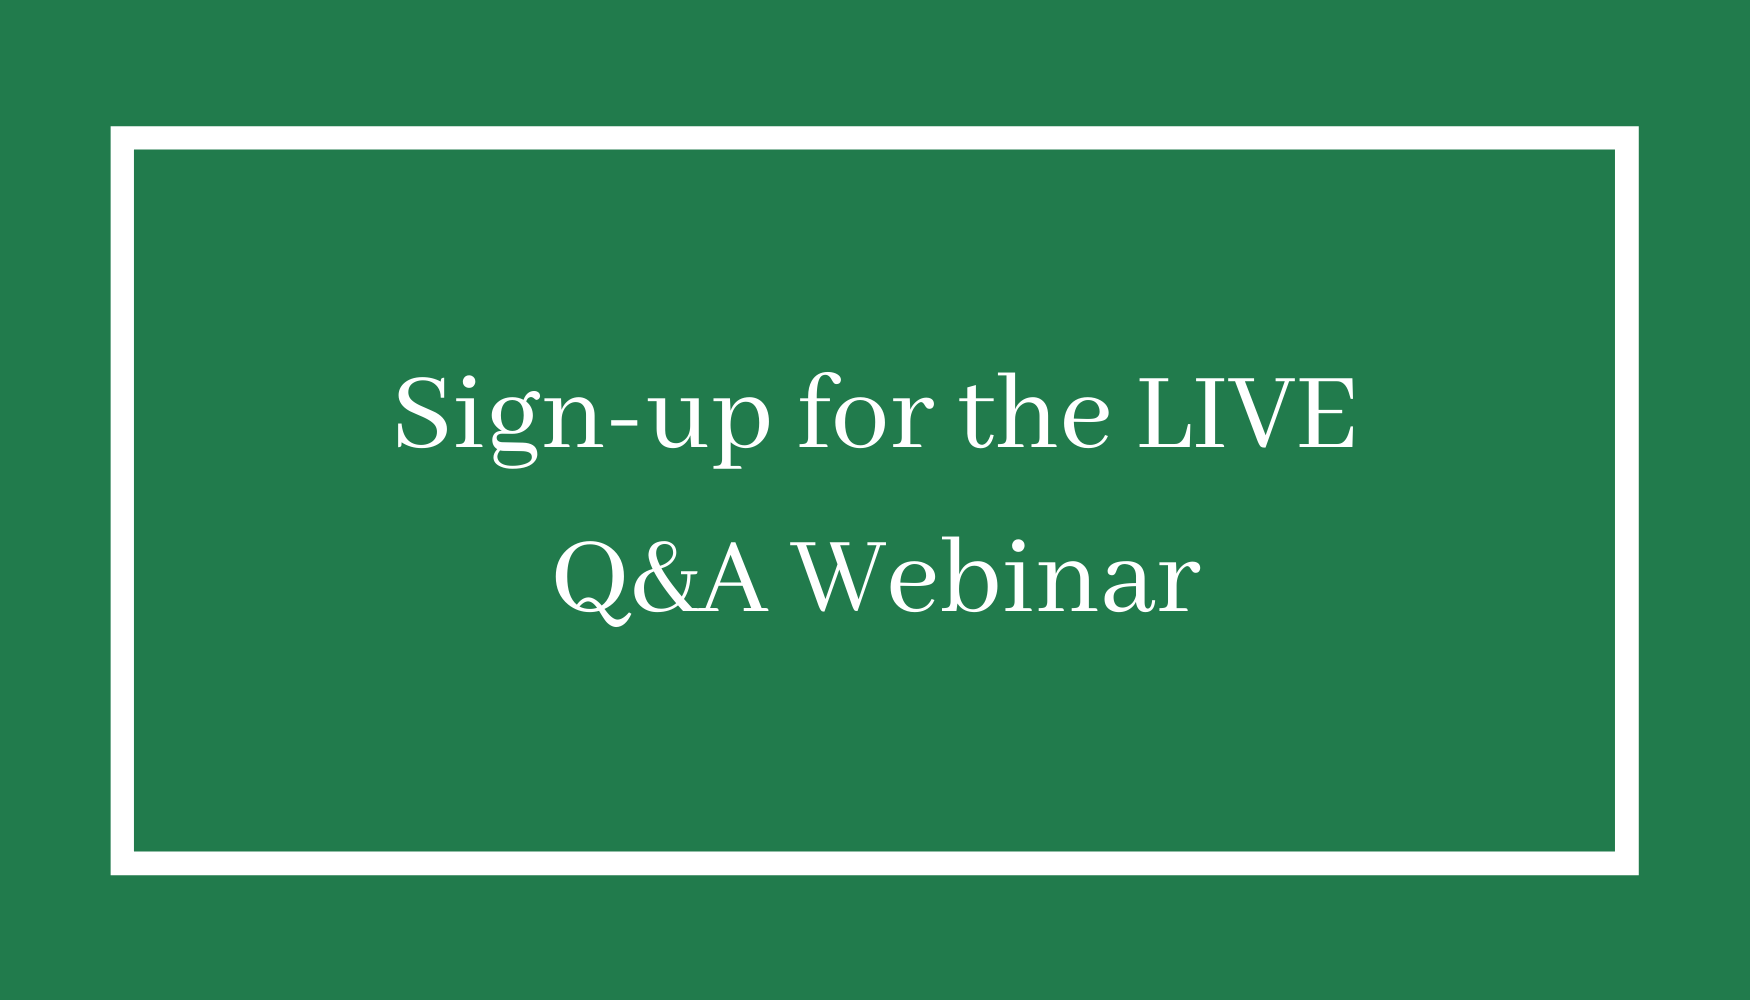 Sign-up for the LIVE Q&A Webinar